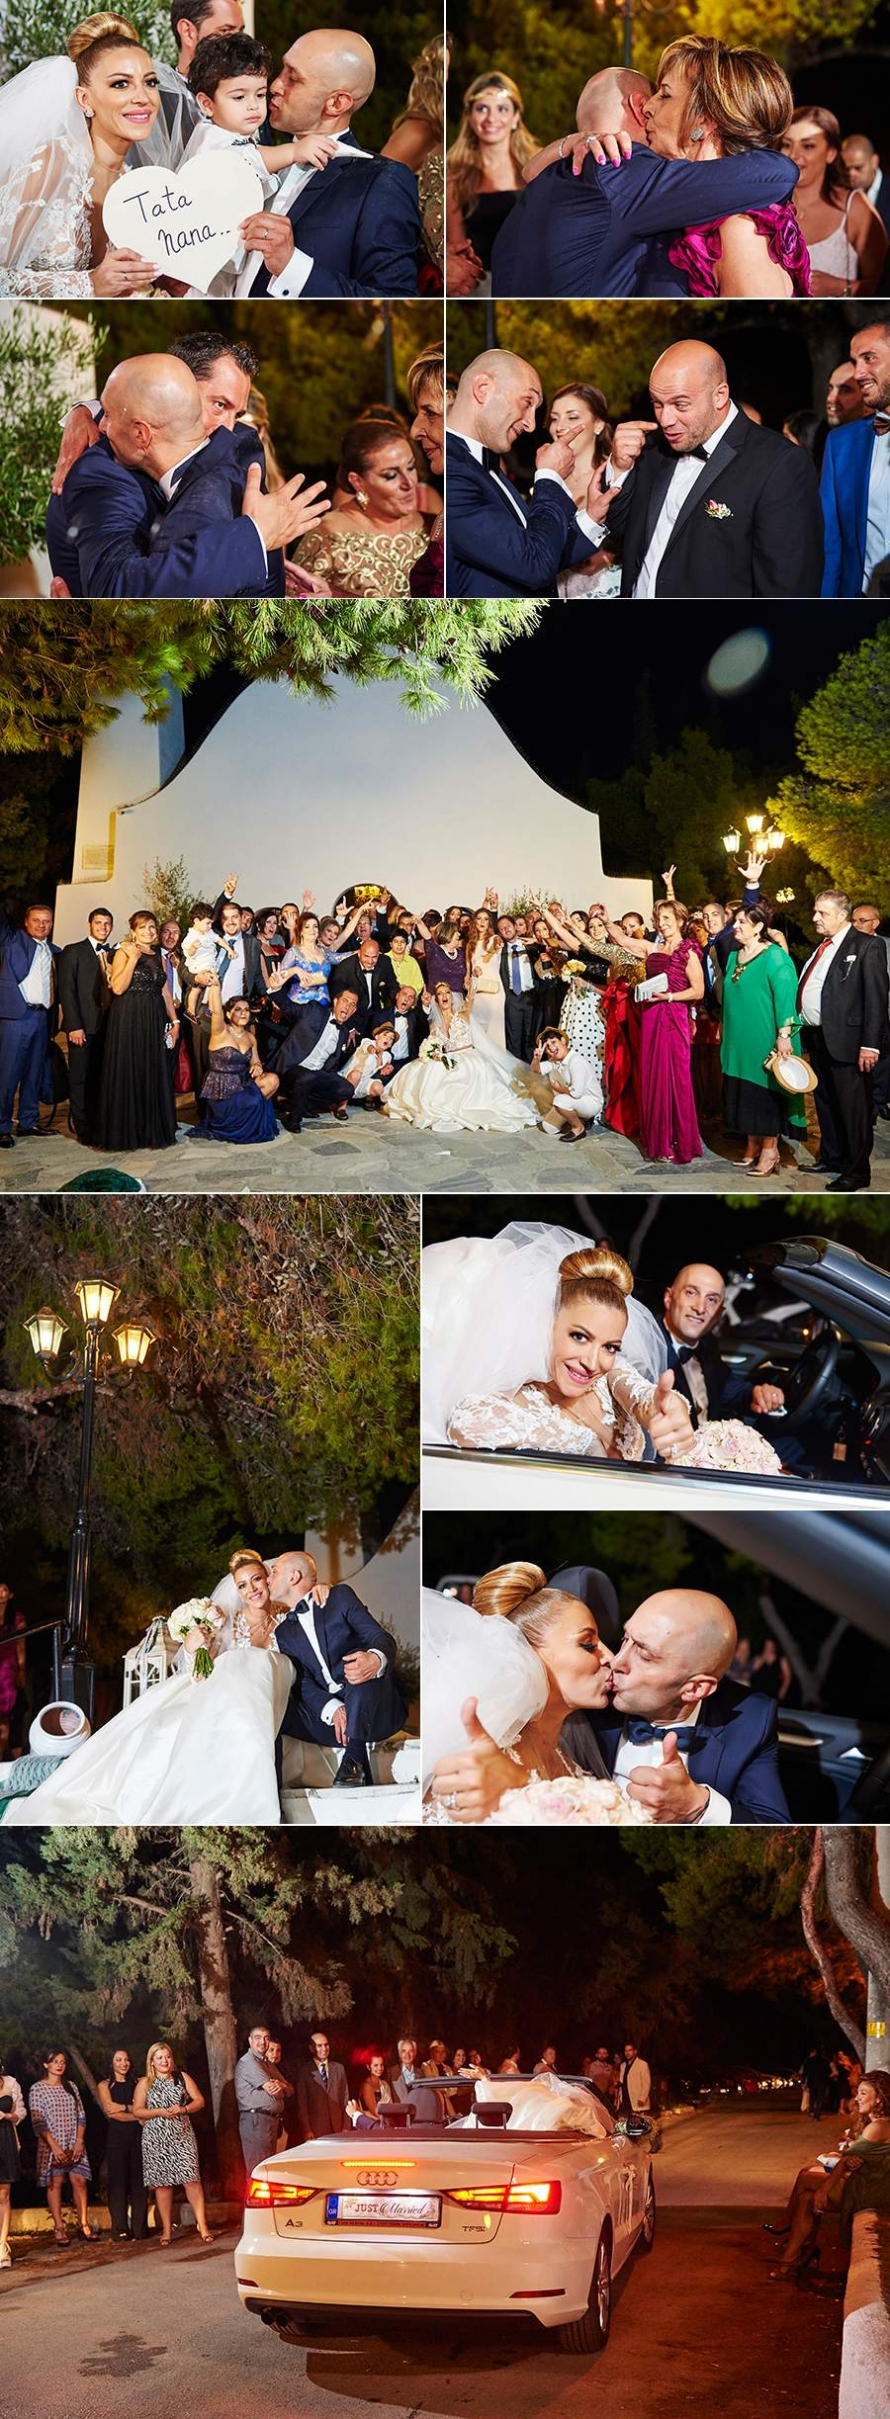 Fady Rana wedding photo 13